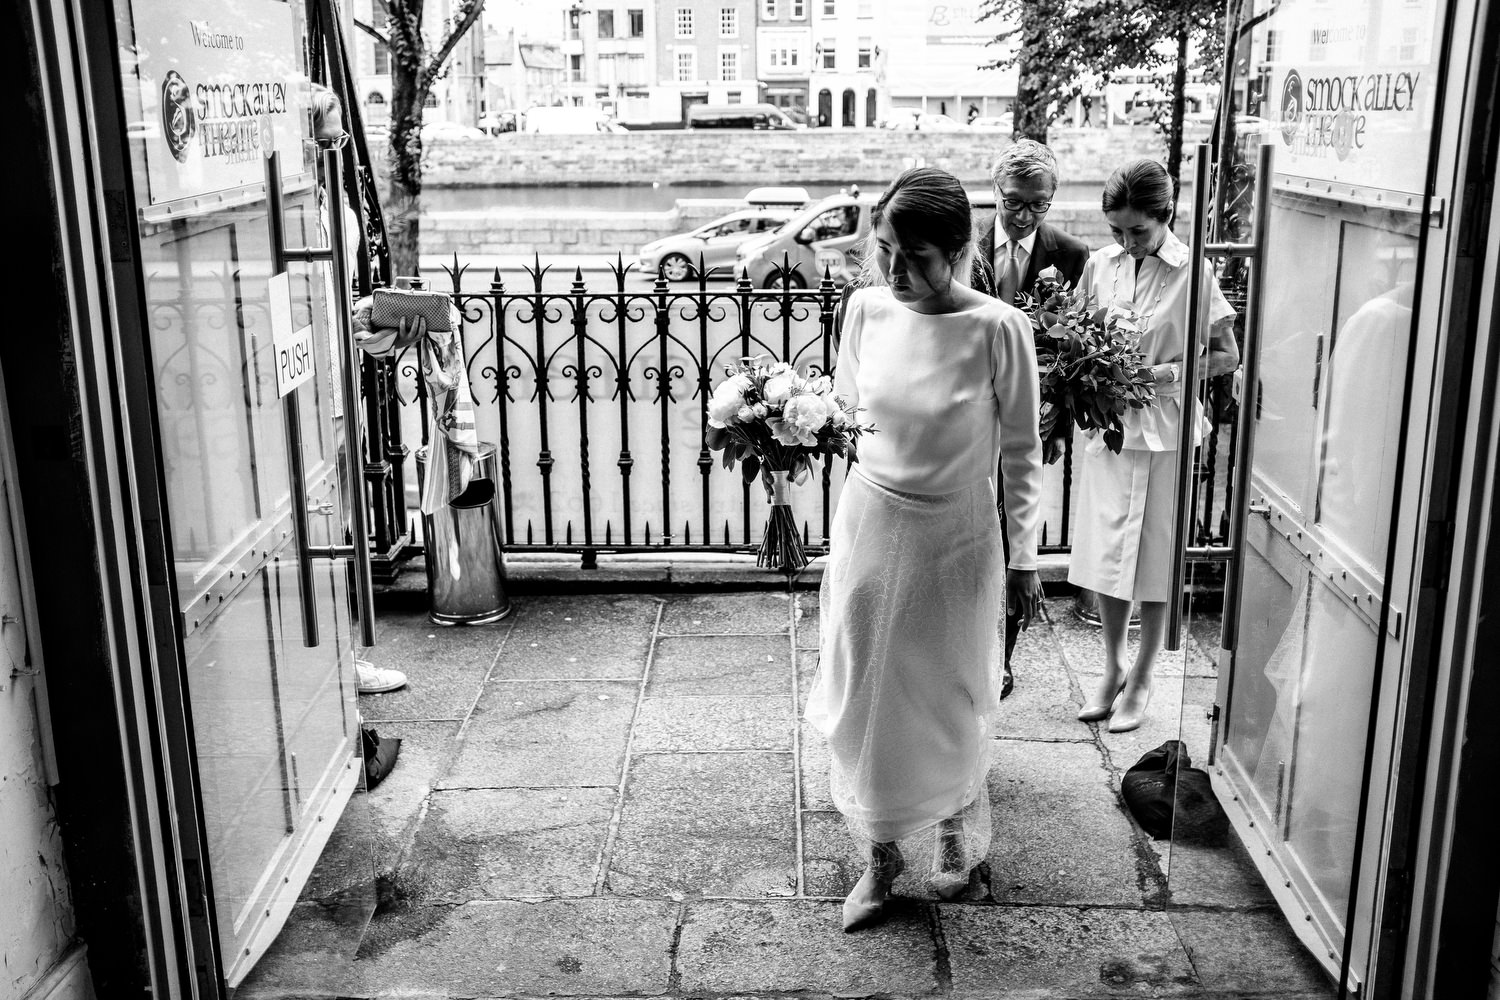 dmp0193_dublin_alley_photography_david_mcclelland_ceremony_humanist_documentary_theatre_smock_wedding_photographer